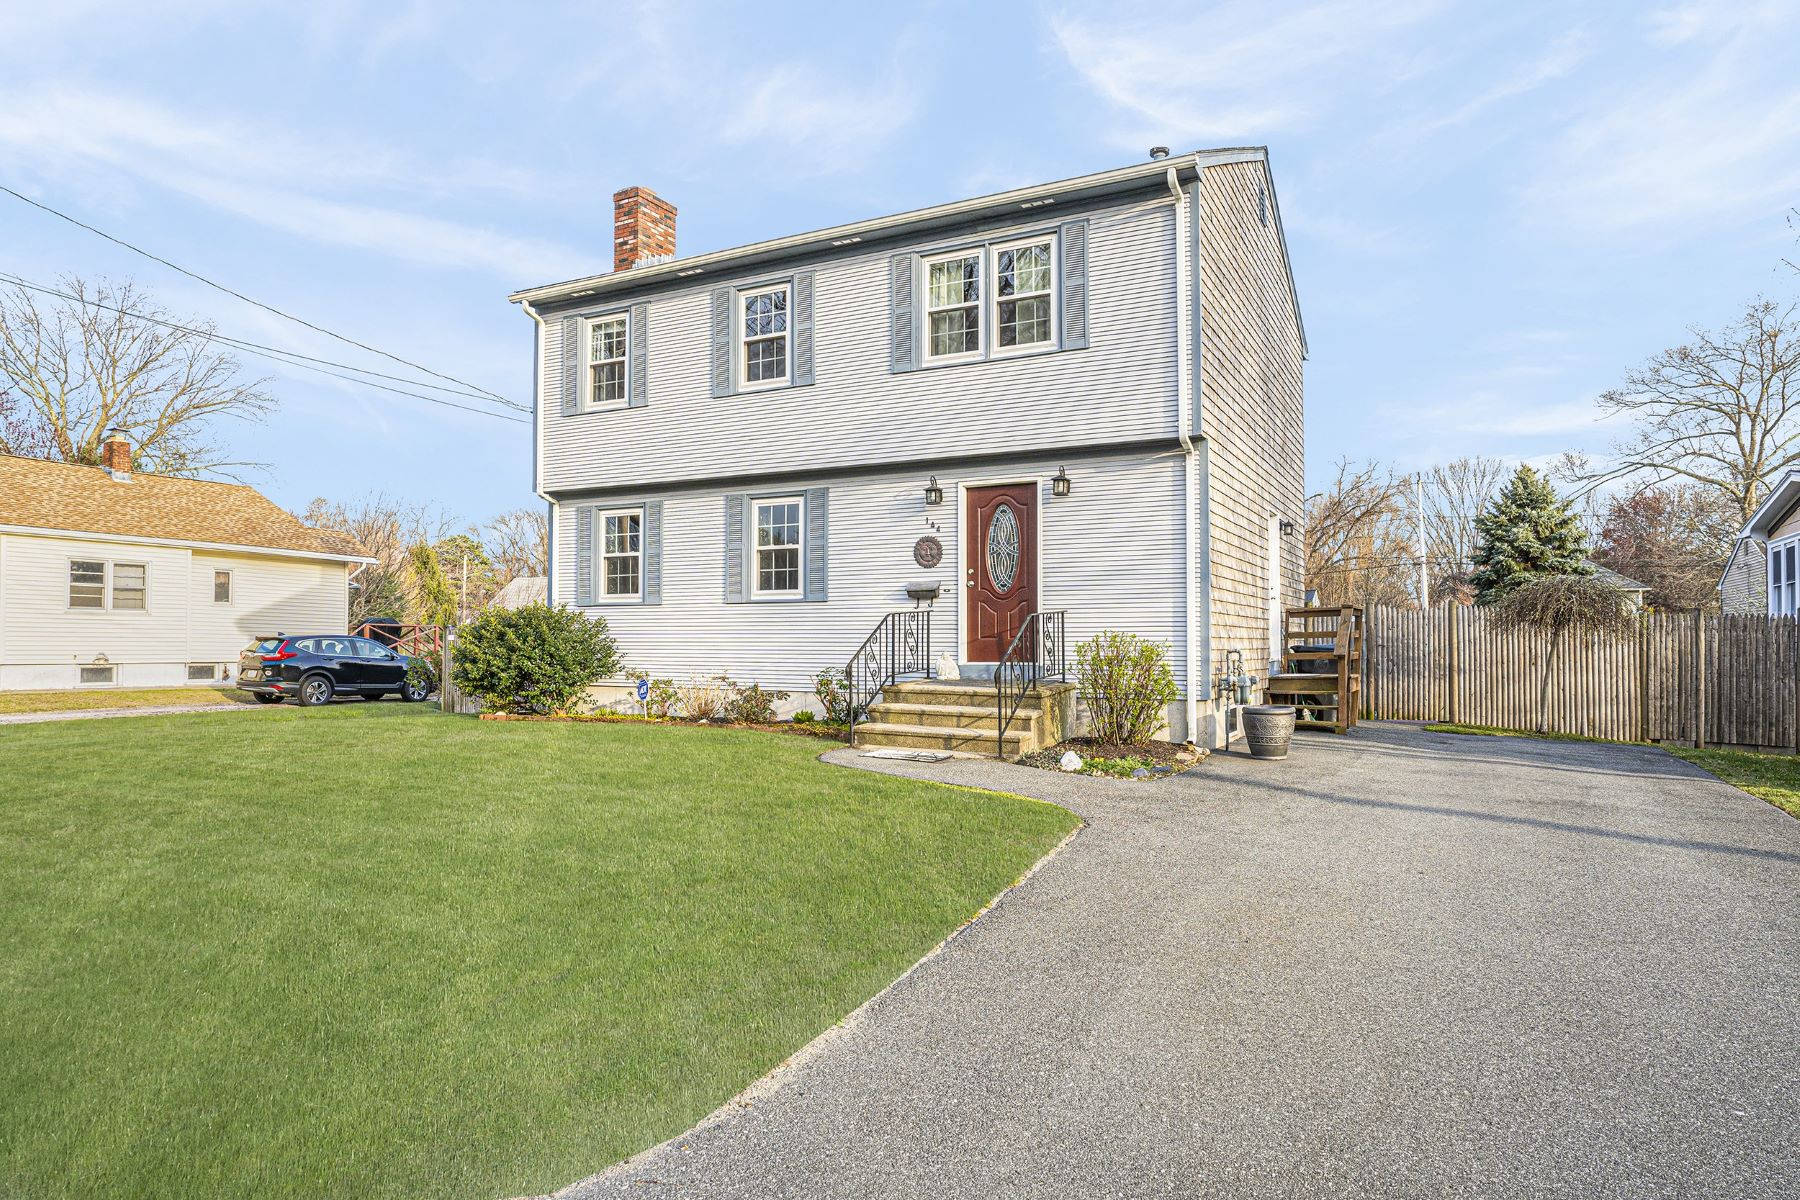 Single Family Homes for Sale at 144 Vernon Street, Warwick, RI 144 Vernon Street Warwick, Rhode Island 02889 United States